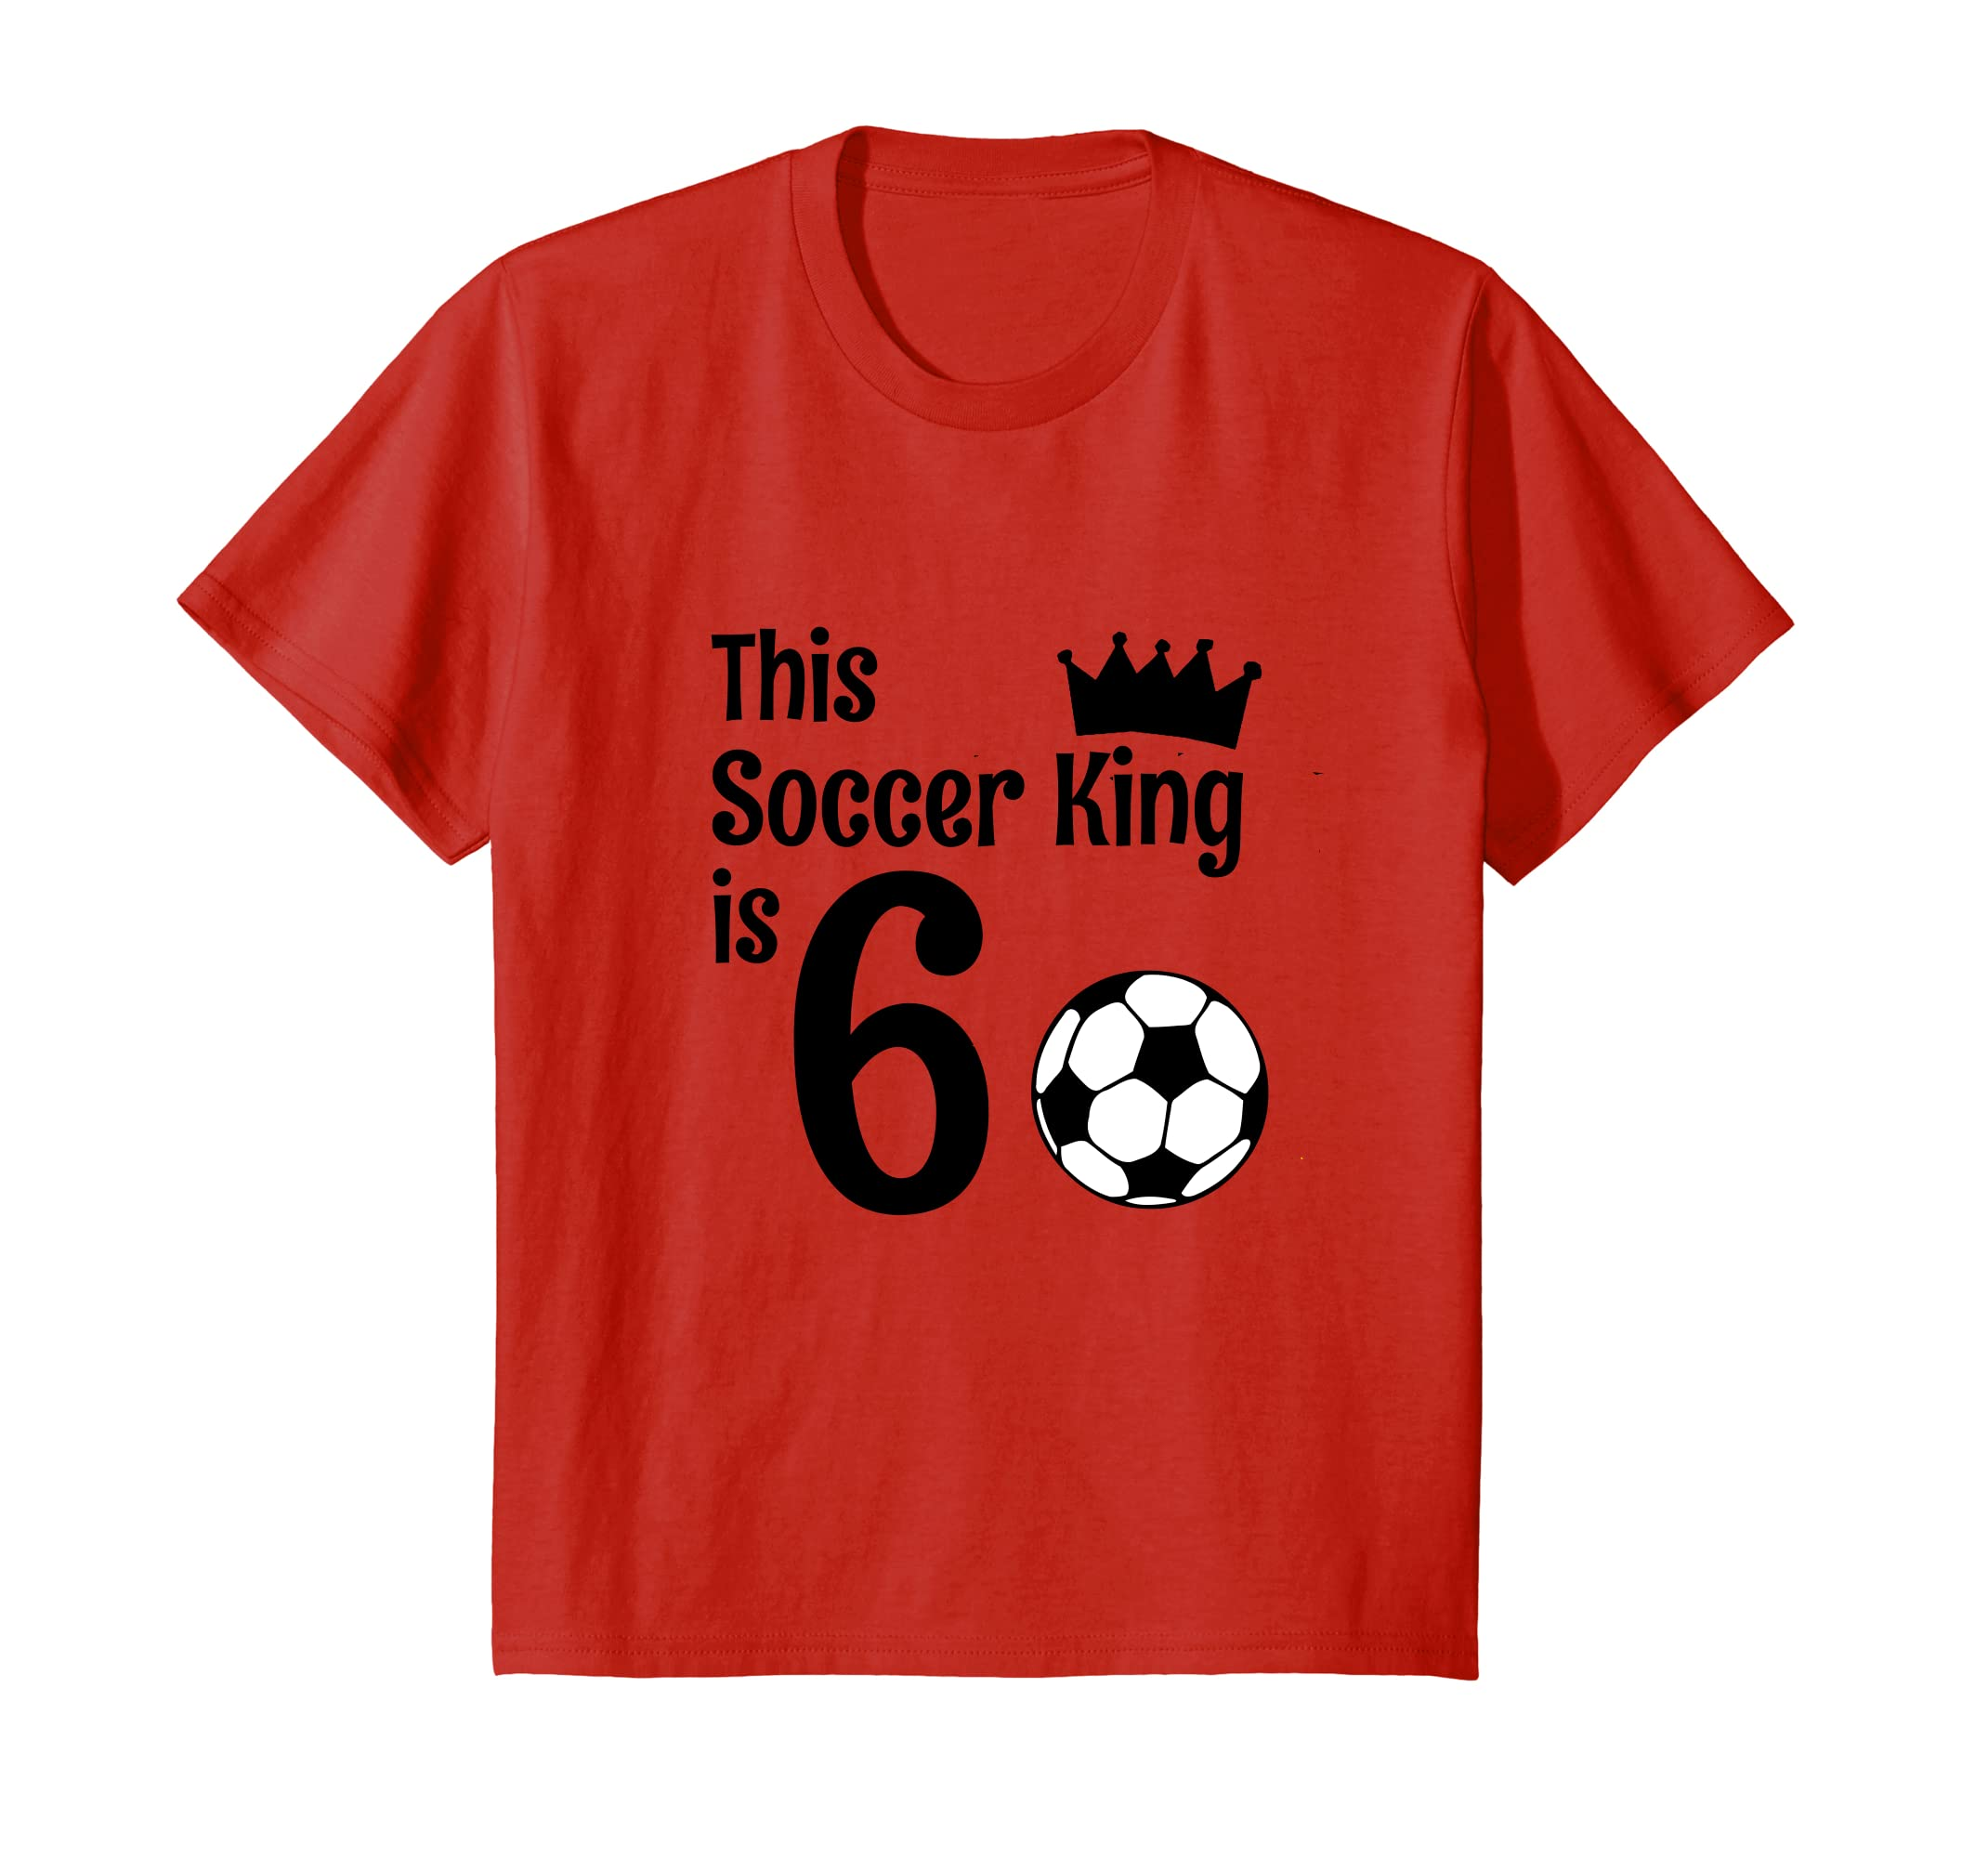 810d8a01 Kids 6 Year Old Soccer Birthday Party 6th Birthday King T-Shirt ...